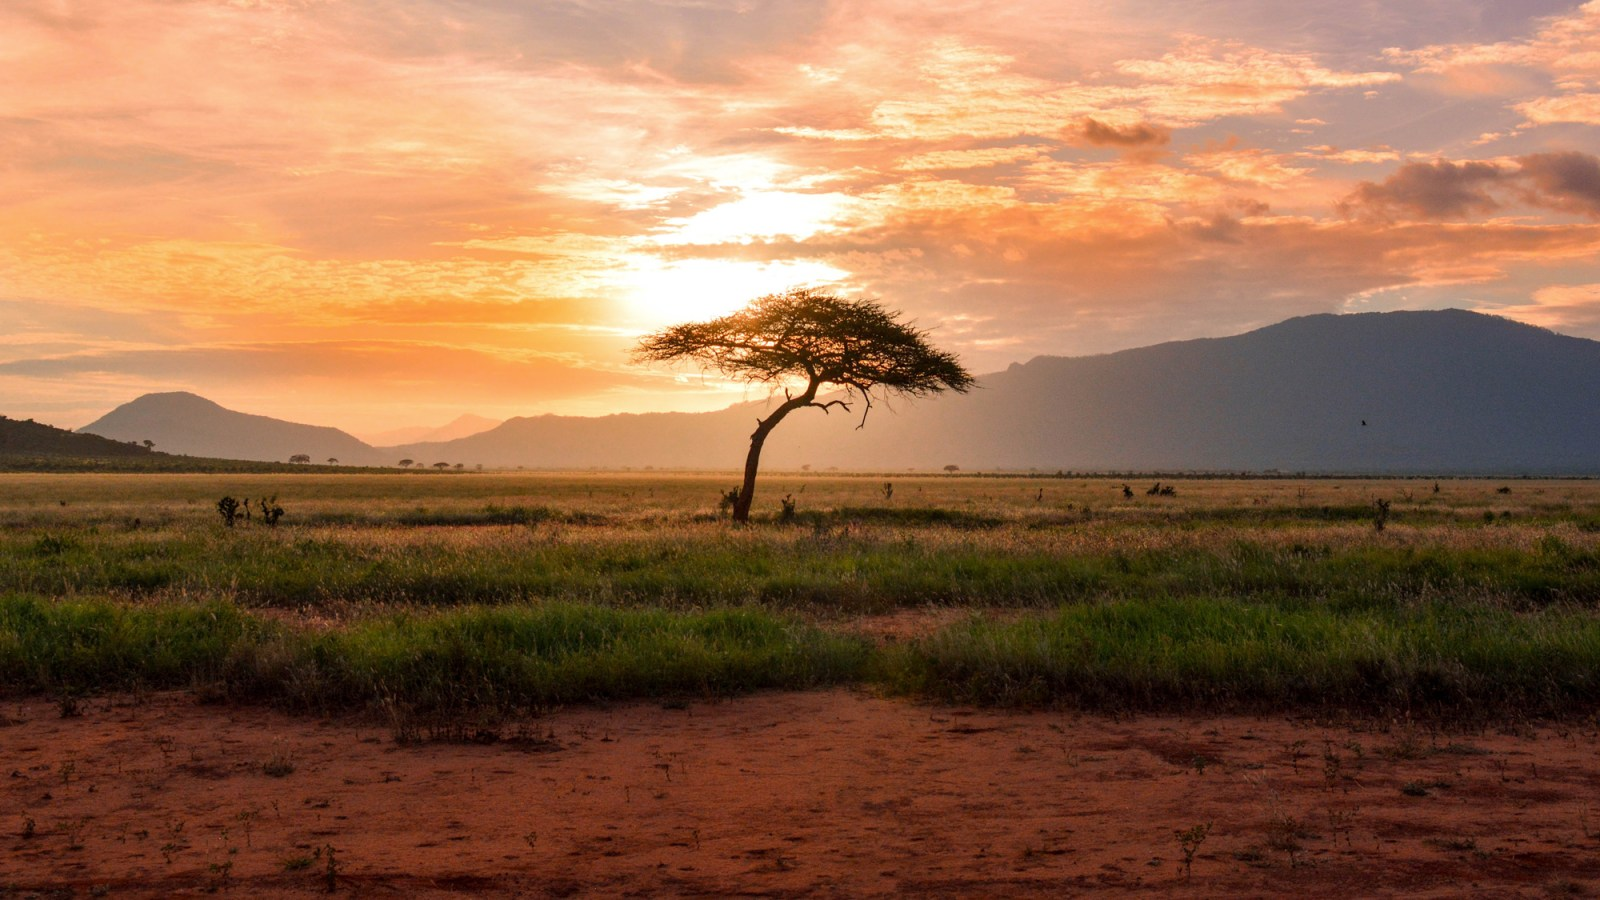 Image from Africa